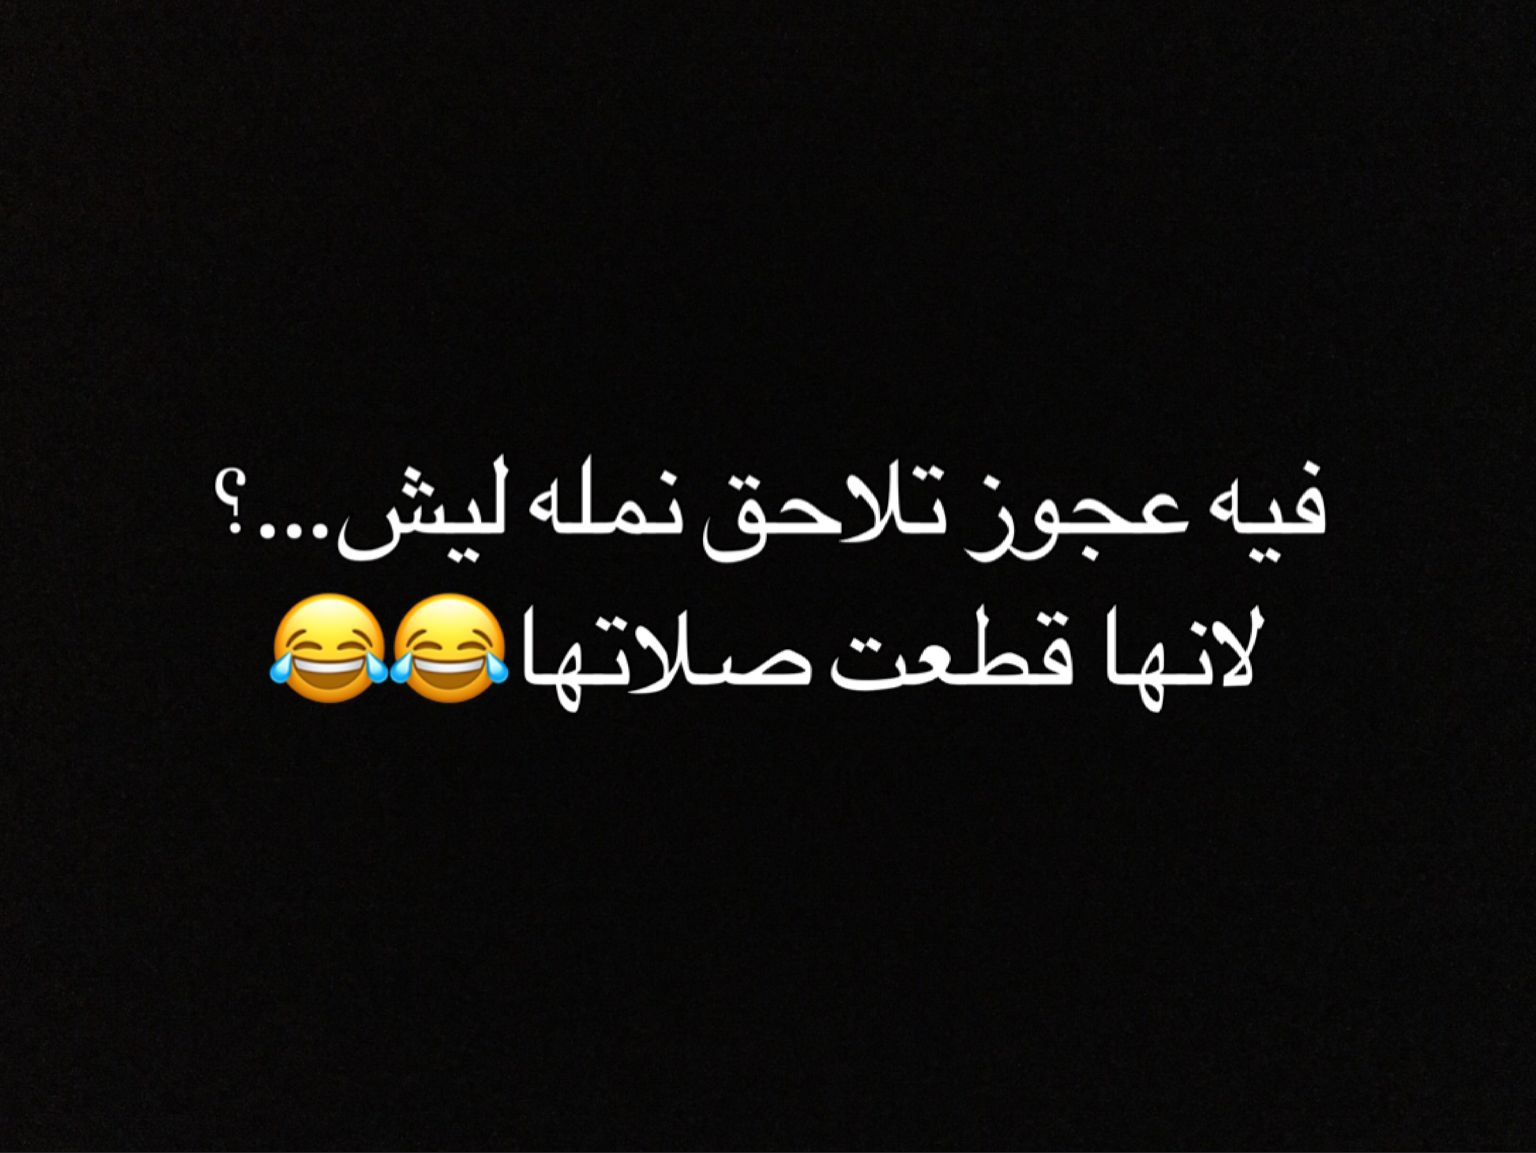 Pin By Basmah 2010 On نكت نمل وغيرها Jokes Quotes Funny Arabic Quotes Funny Quotes